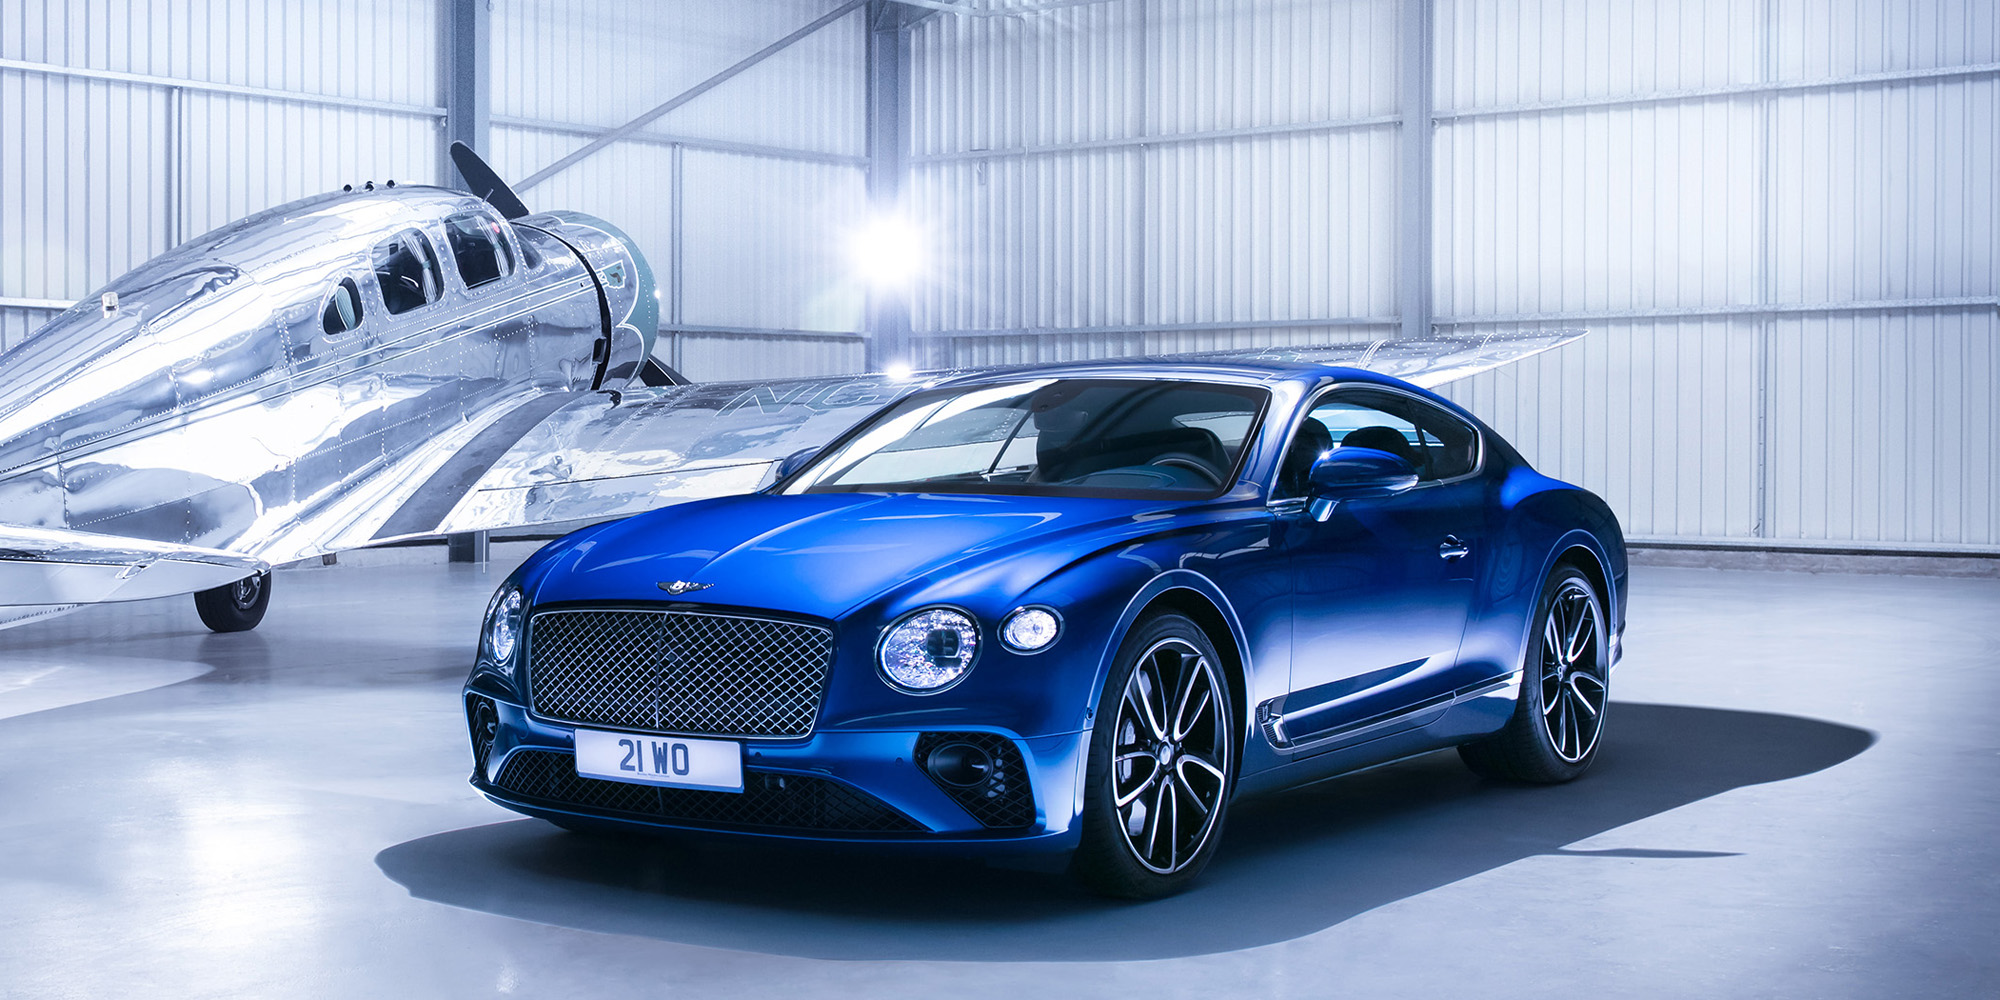 The Bentley Continental Gt Makes Global Debut At Iaa 2017